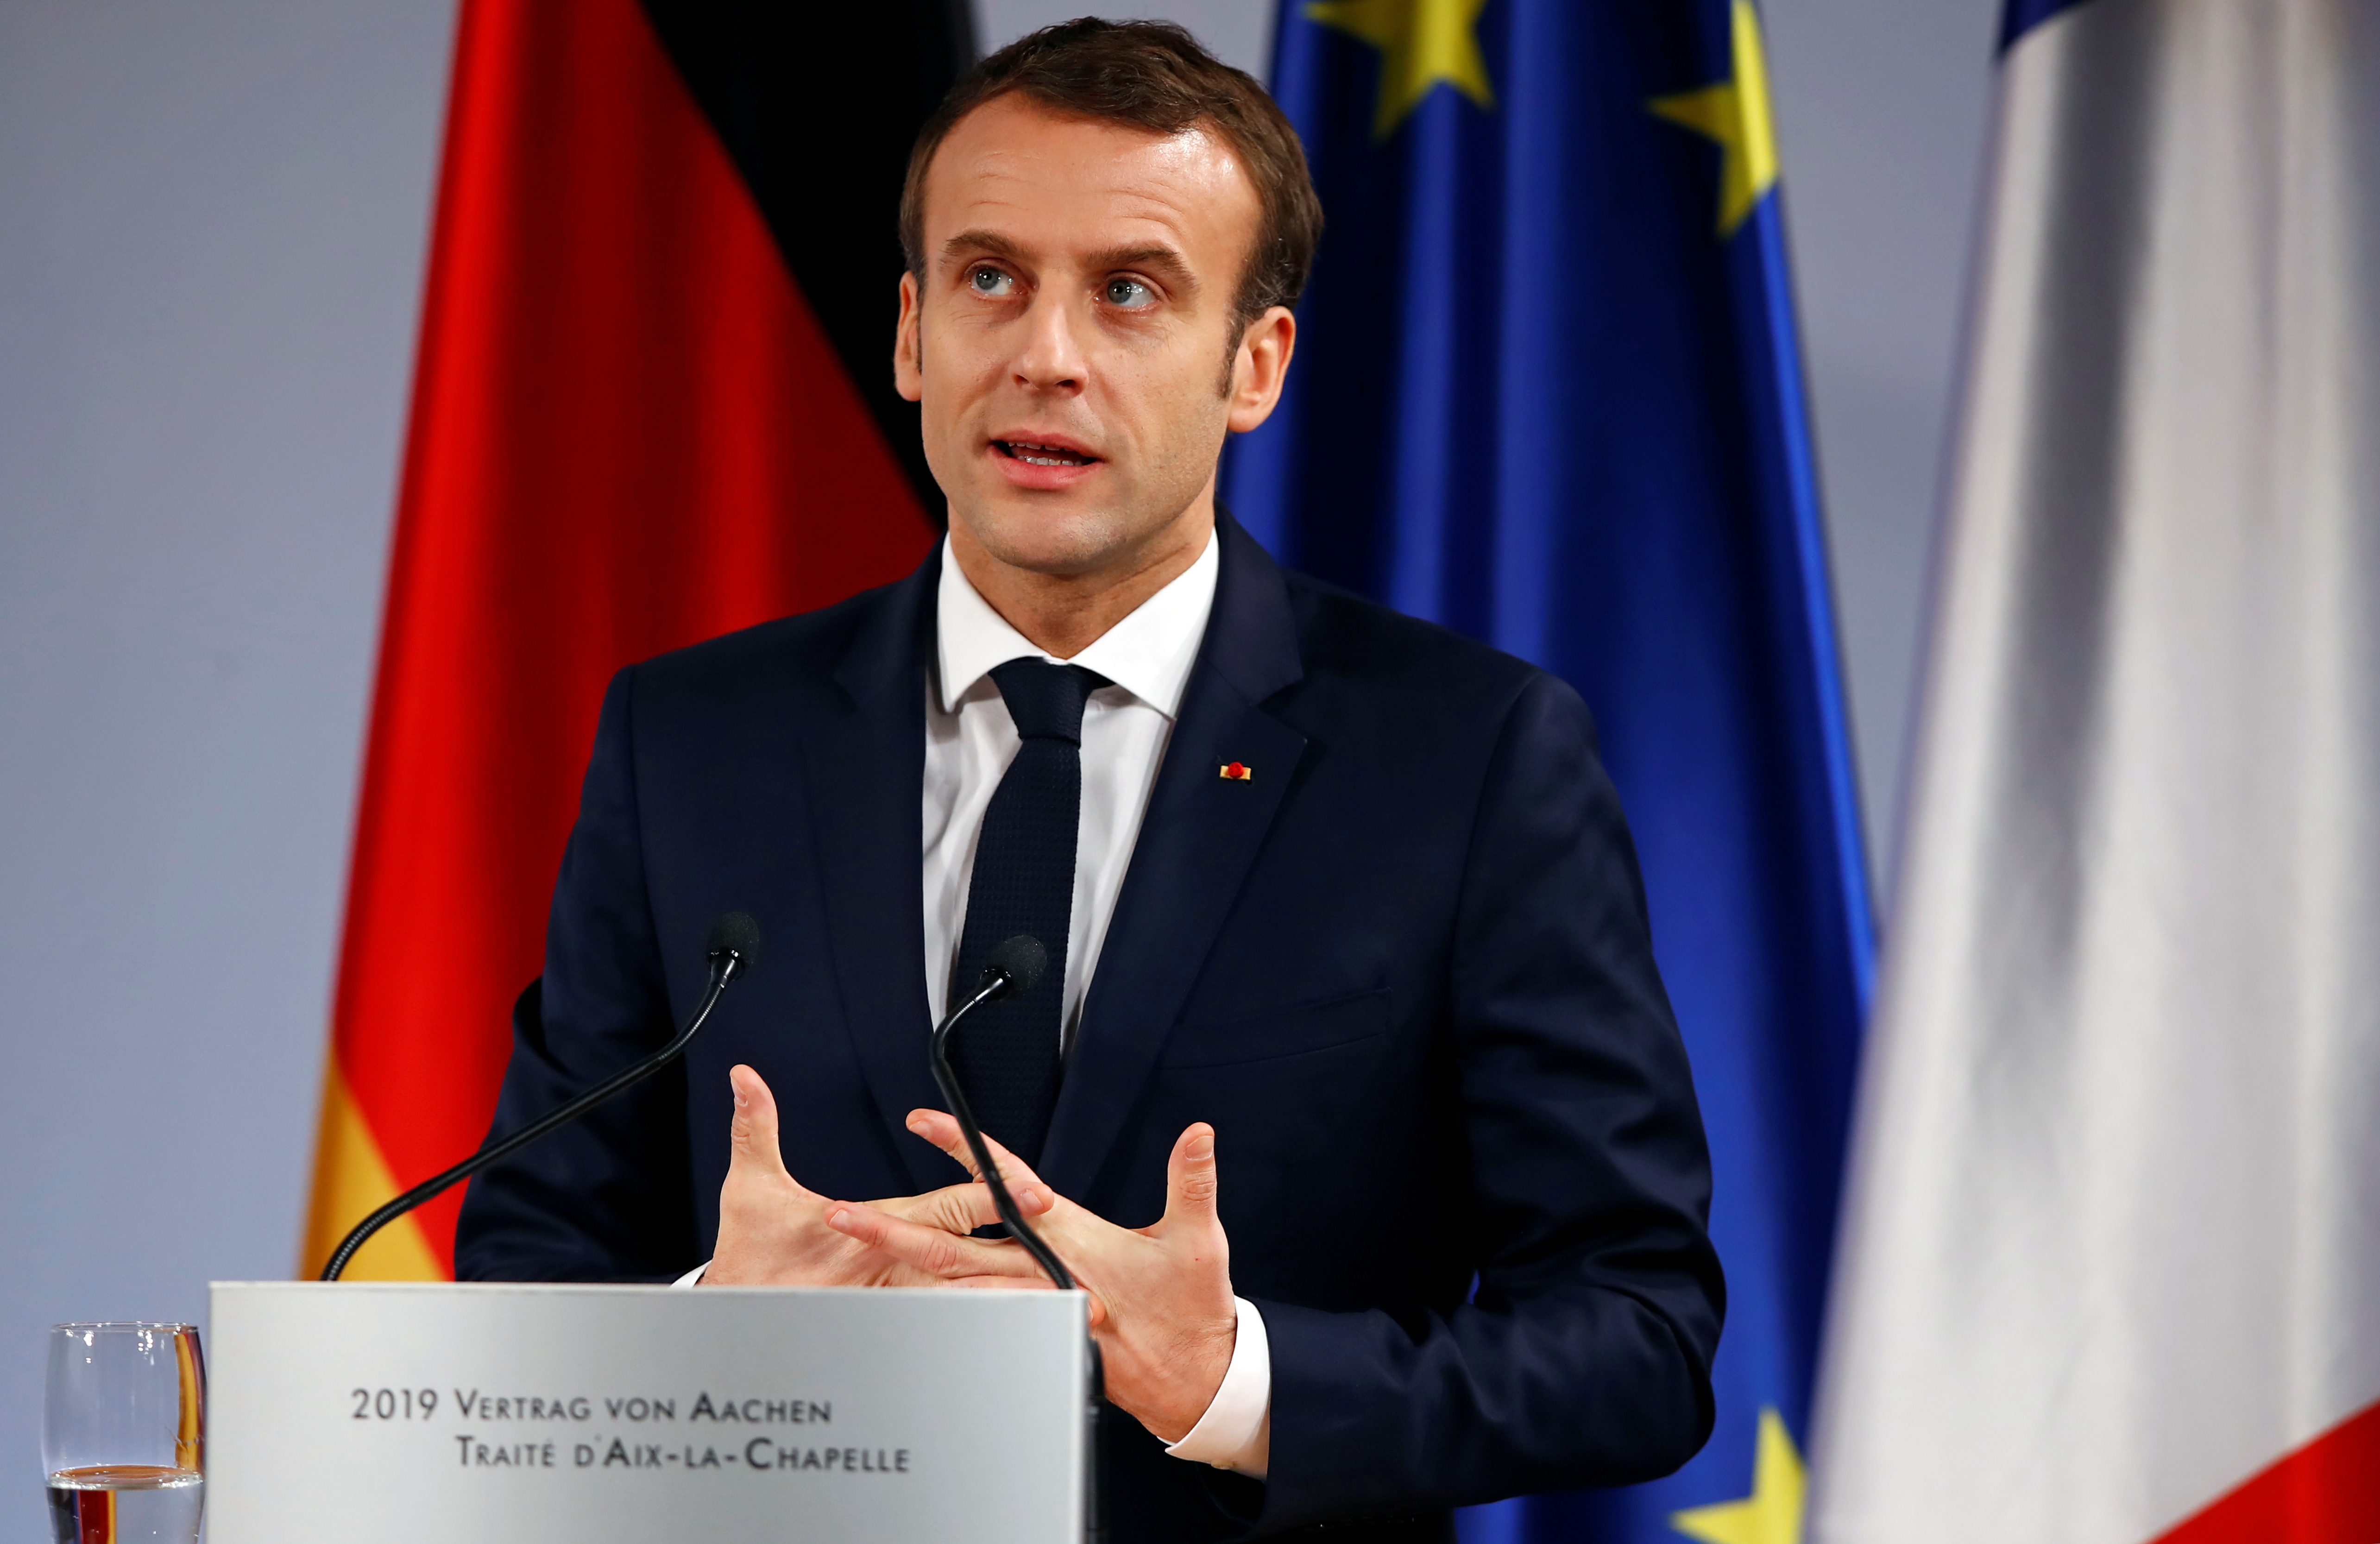 FILE PHOTO: French President Emmanuel Macron speaks during a signing of a new agreement on bilateral cooperation and integration, known as Treaty of Aachen, in Aachen, Germany, January 22, 2019. REUTERS/Wolfgang Rattay/File Photo